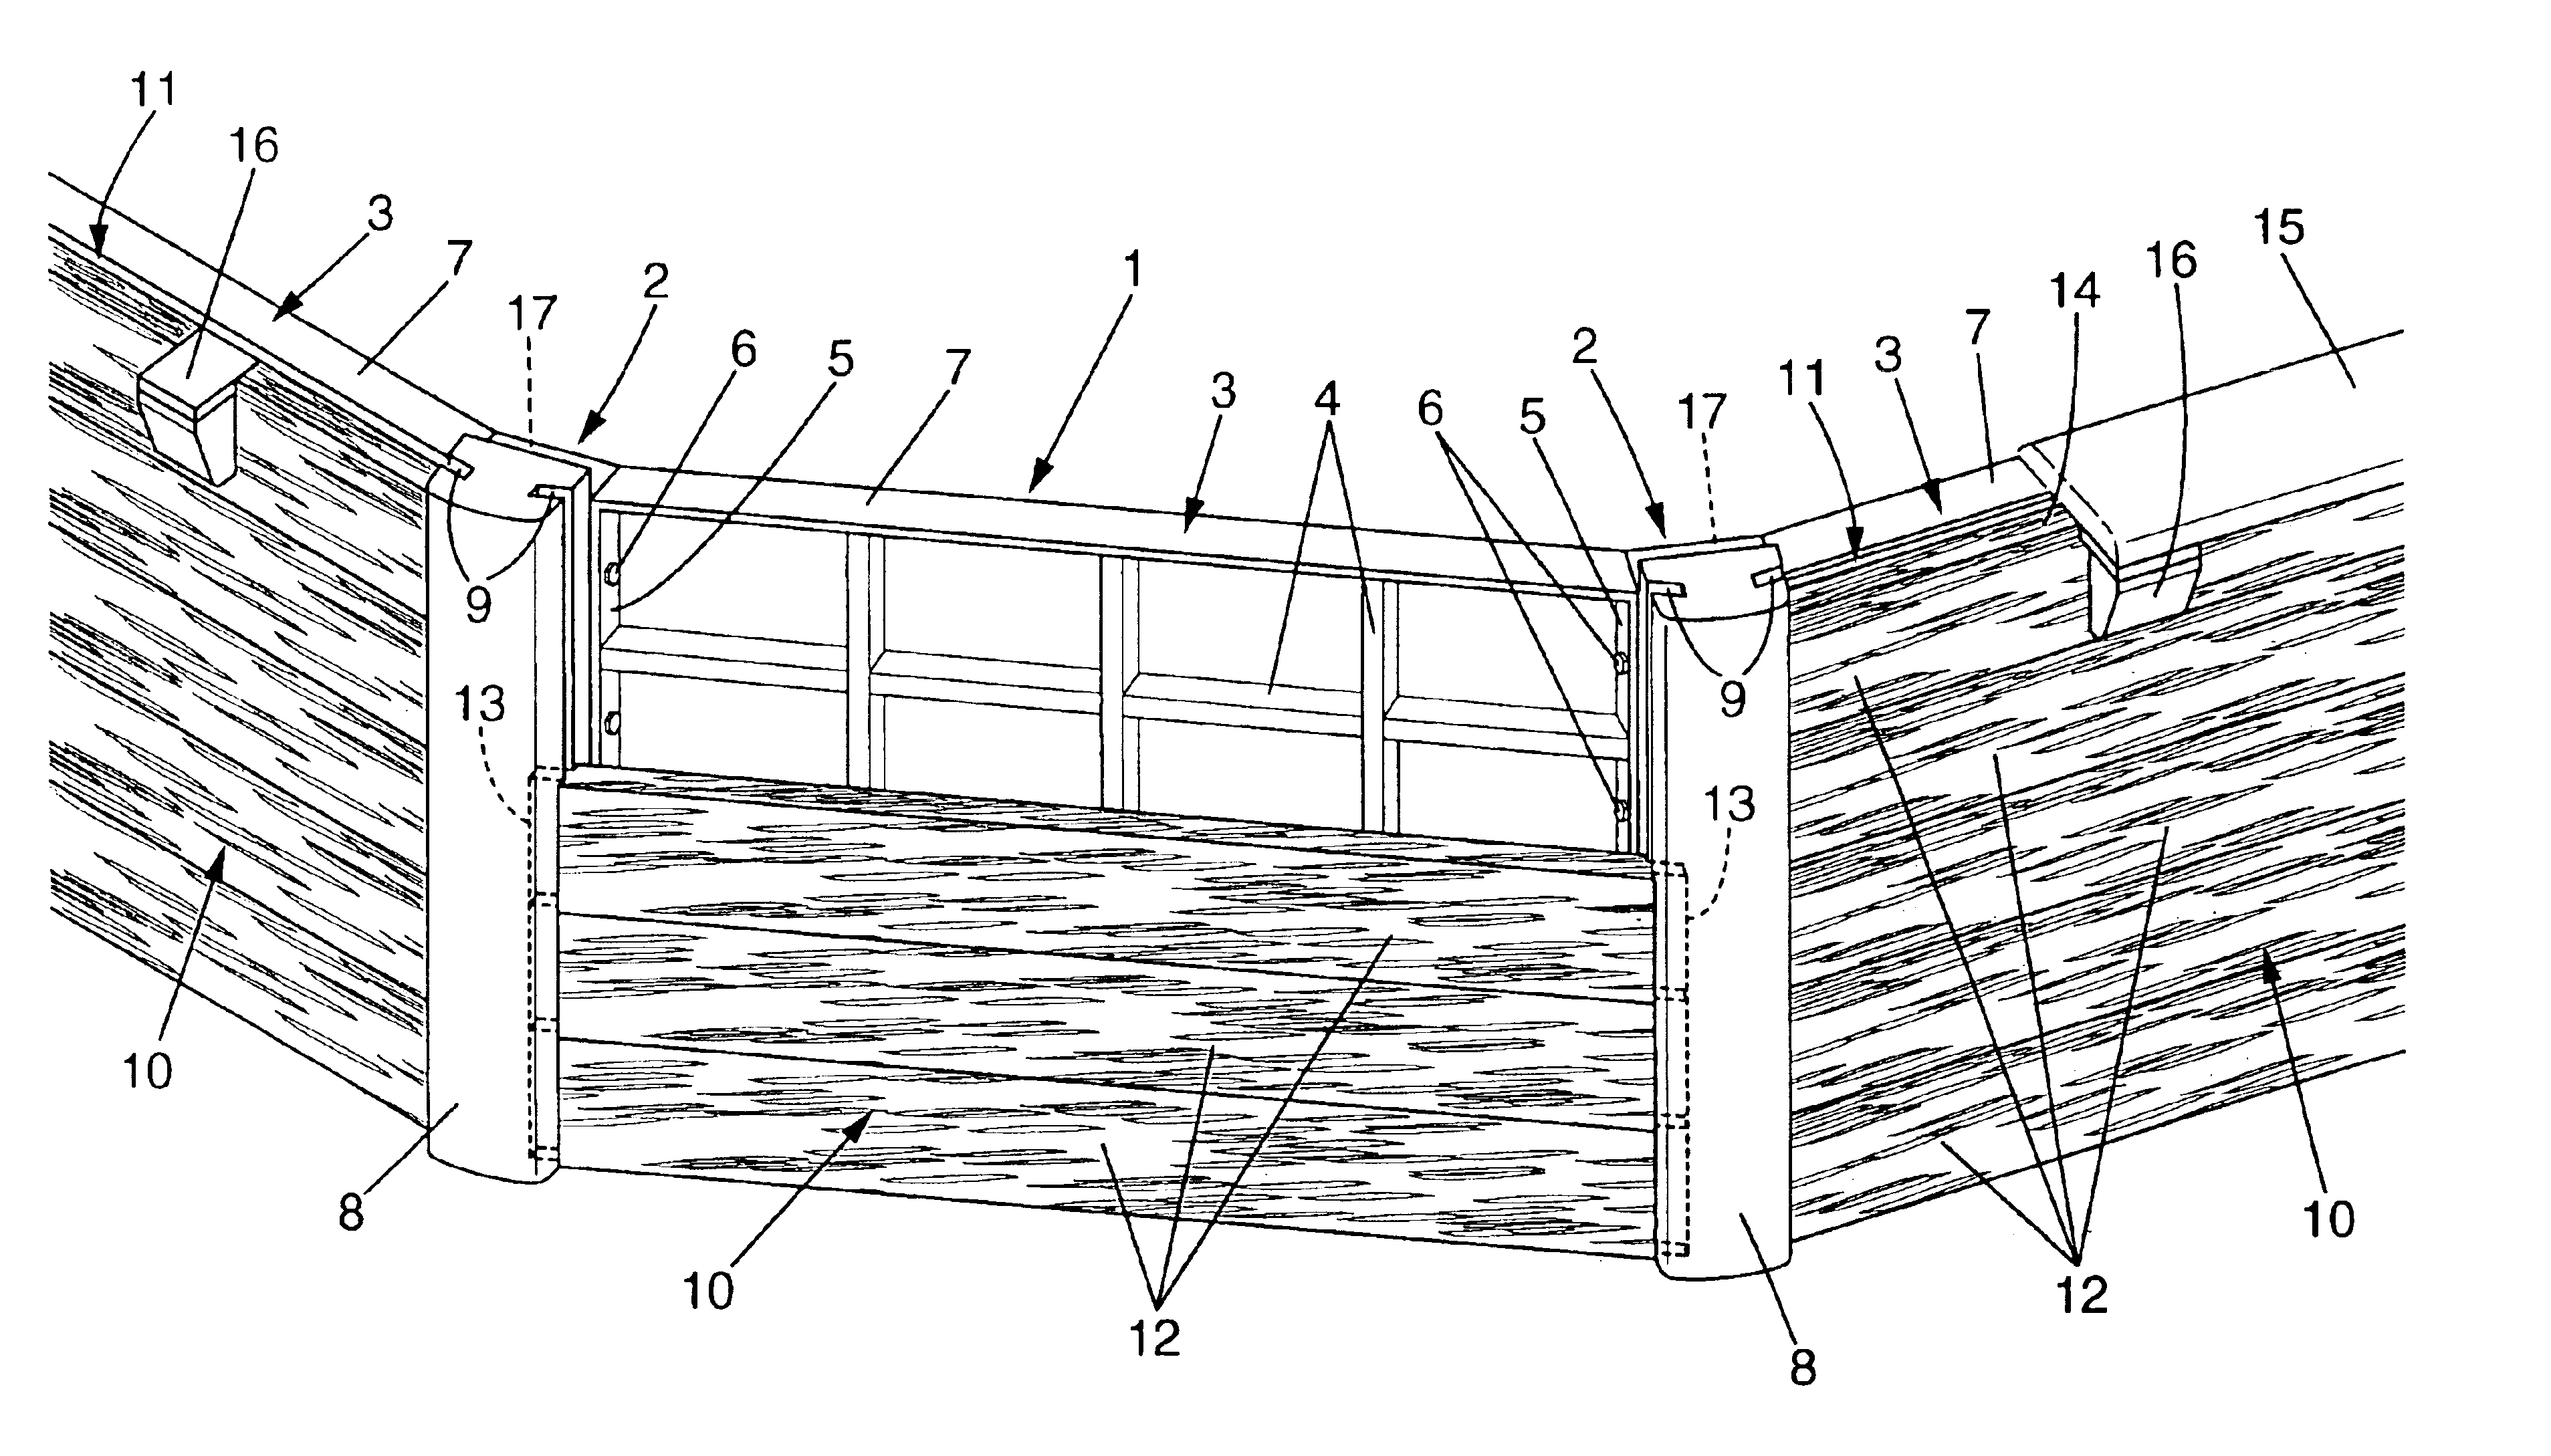 Zodiac Pool Care Europe analytics for us patent no. 6795986, above-ground swimming